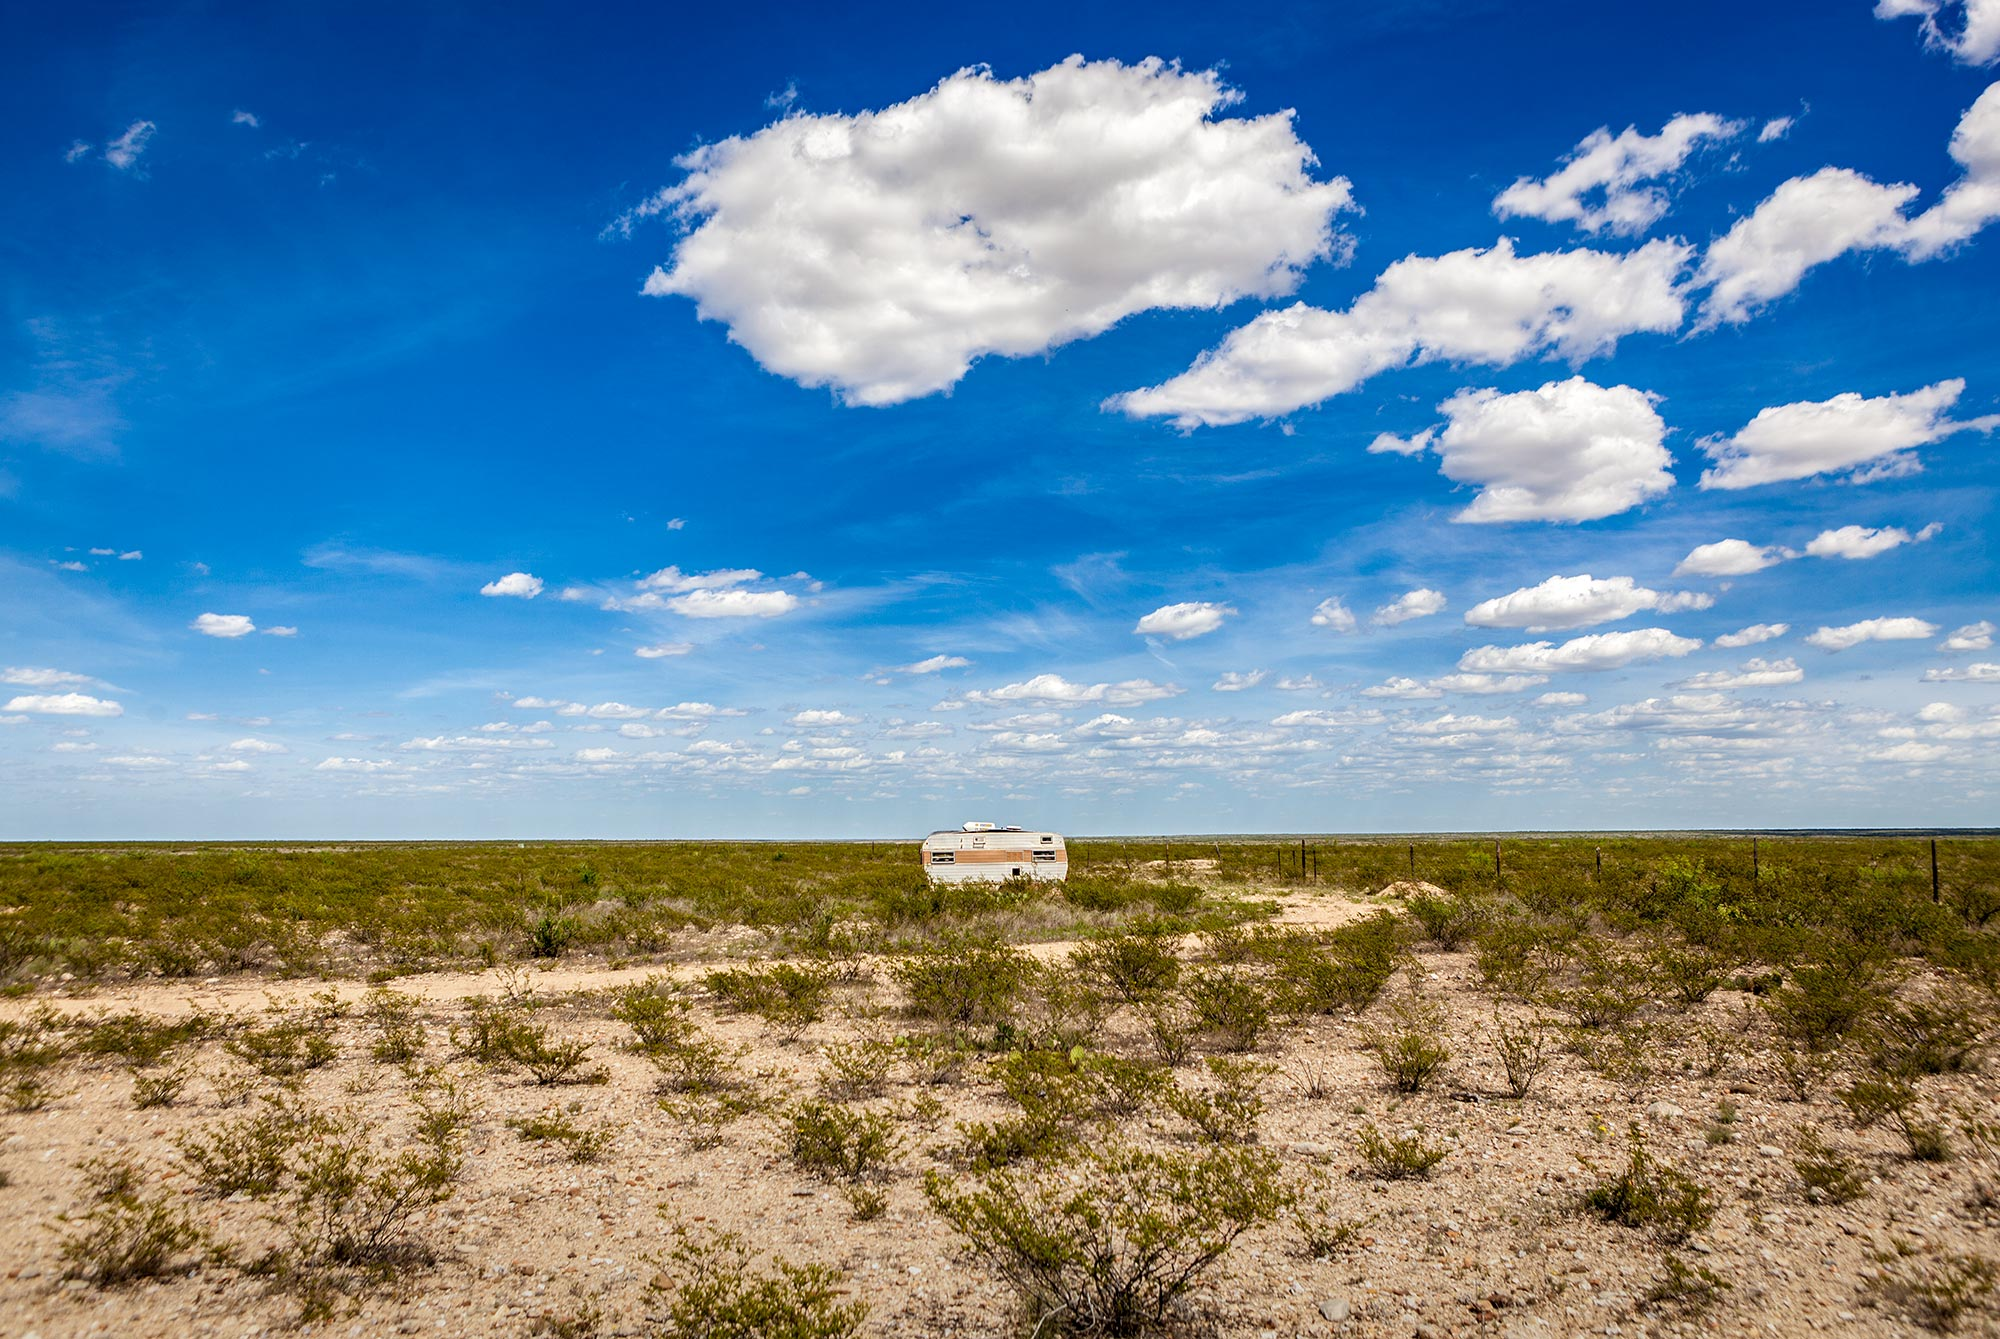 Old travel trailer in the desert - West Texas